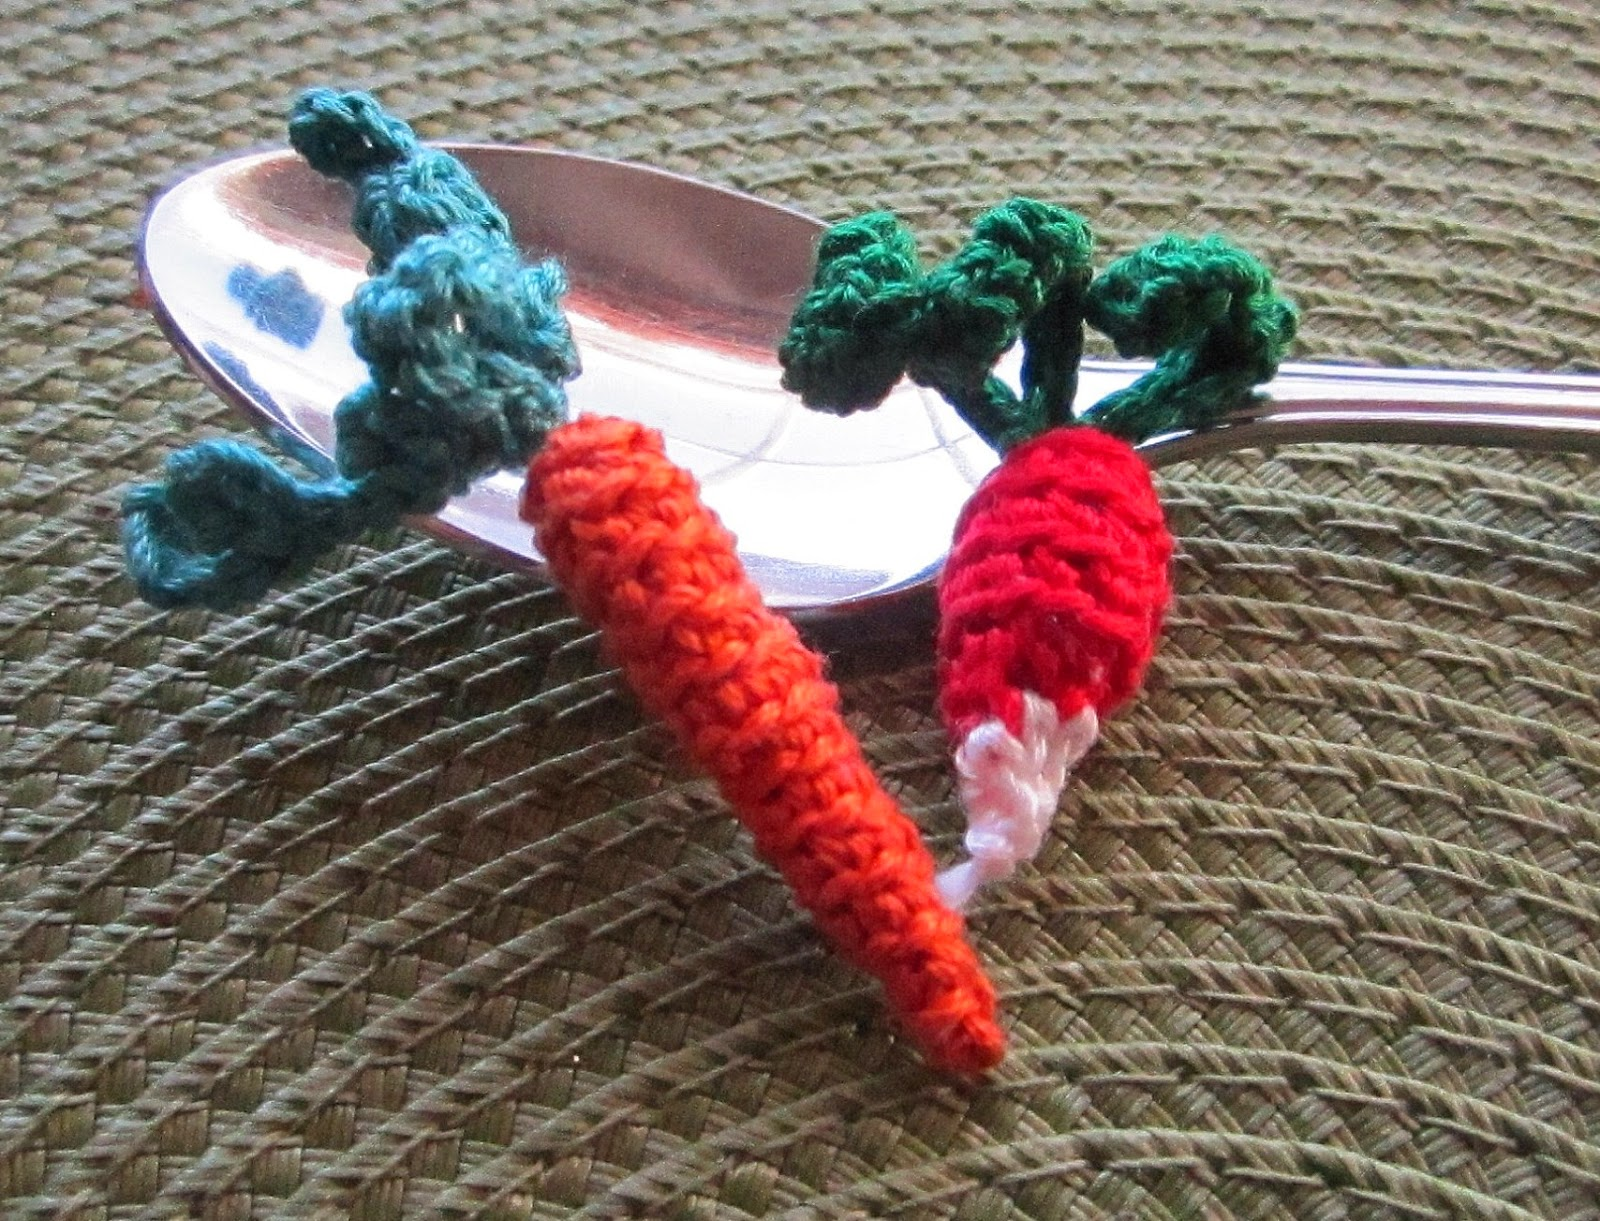 Knitting Patterns For Vegetables : KBB Crafts & Stitches: Knit and Crochet Your Veggies!